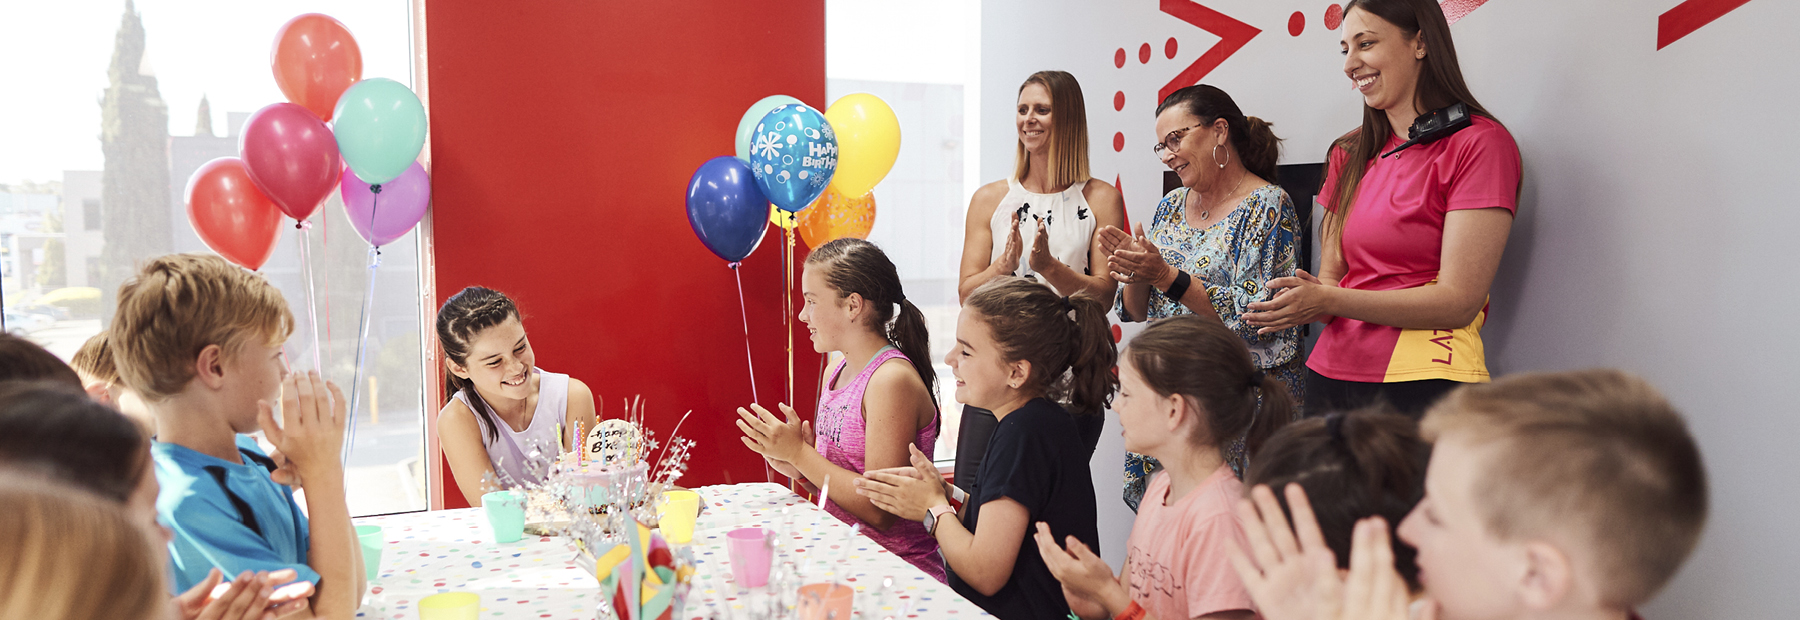 Our guide to choosing your birthday party activity!